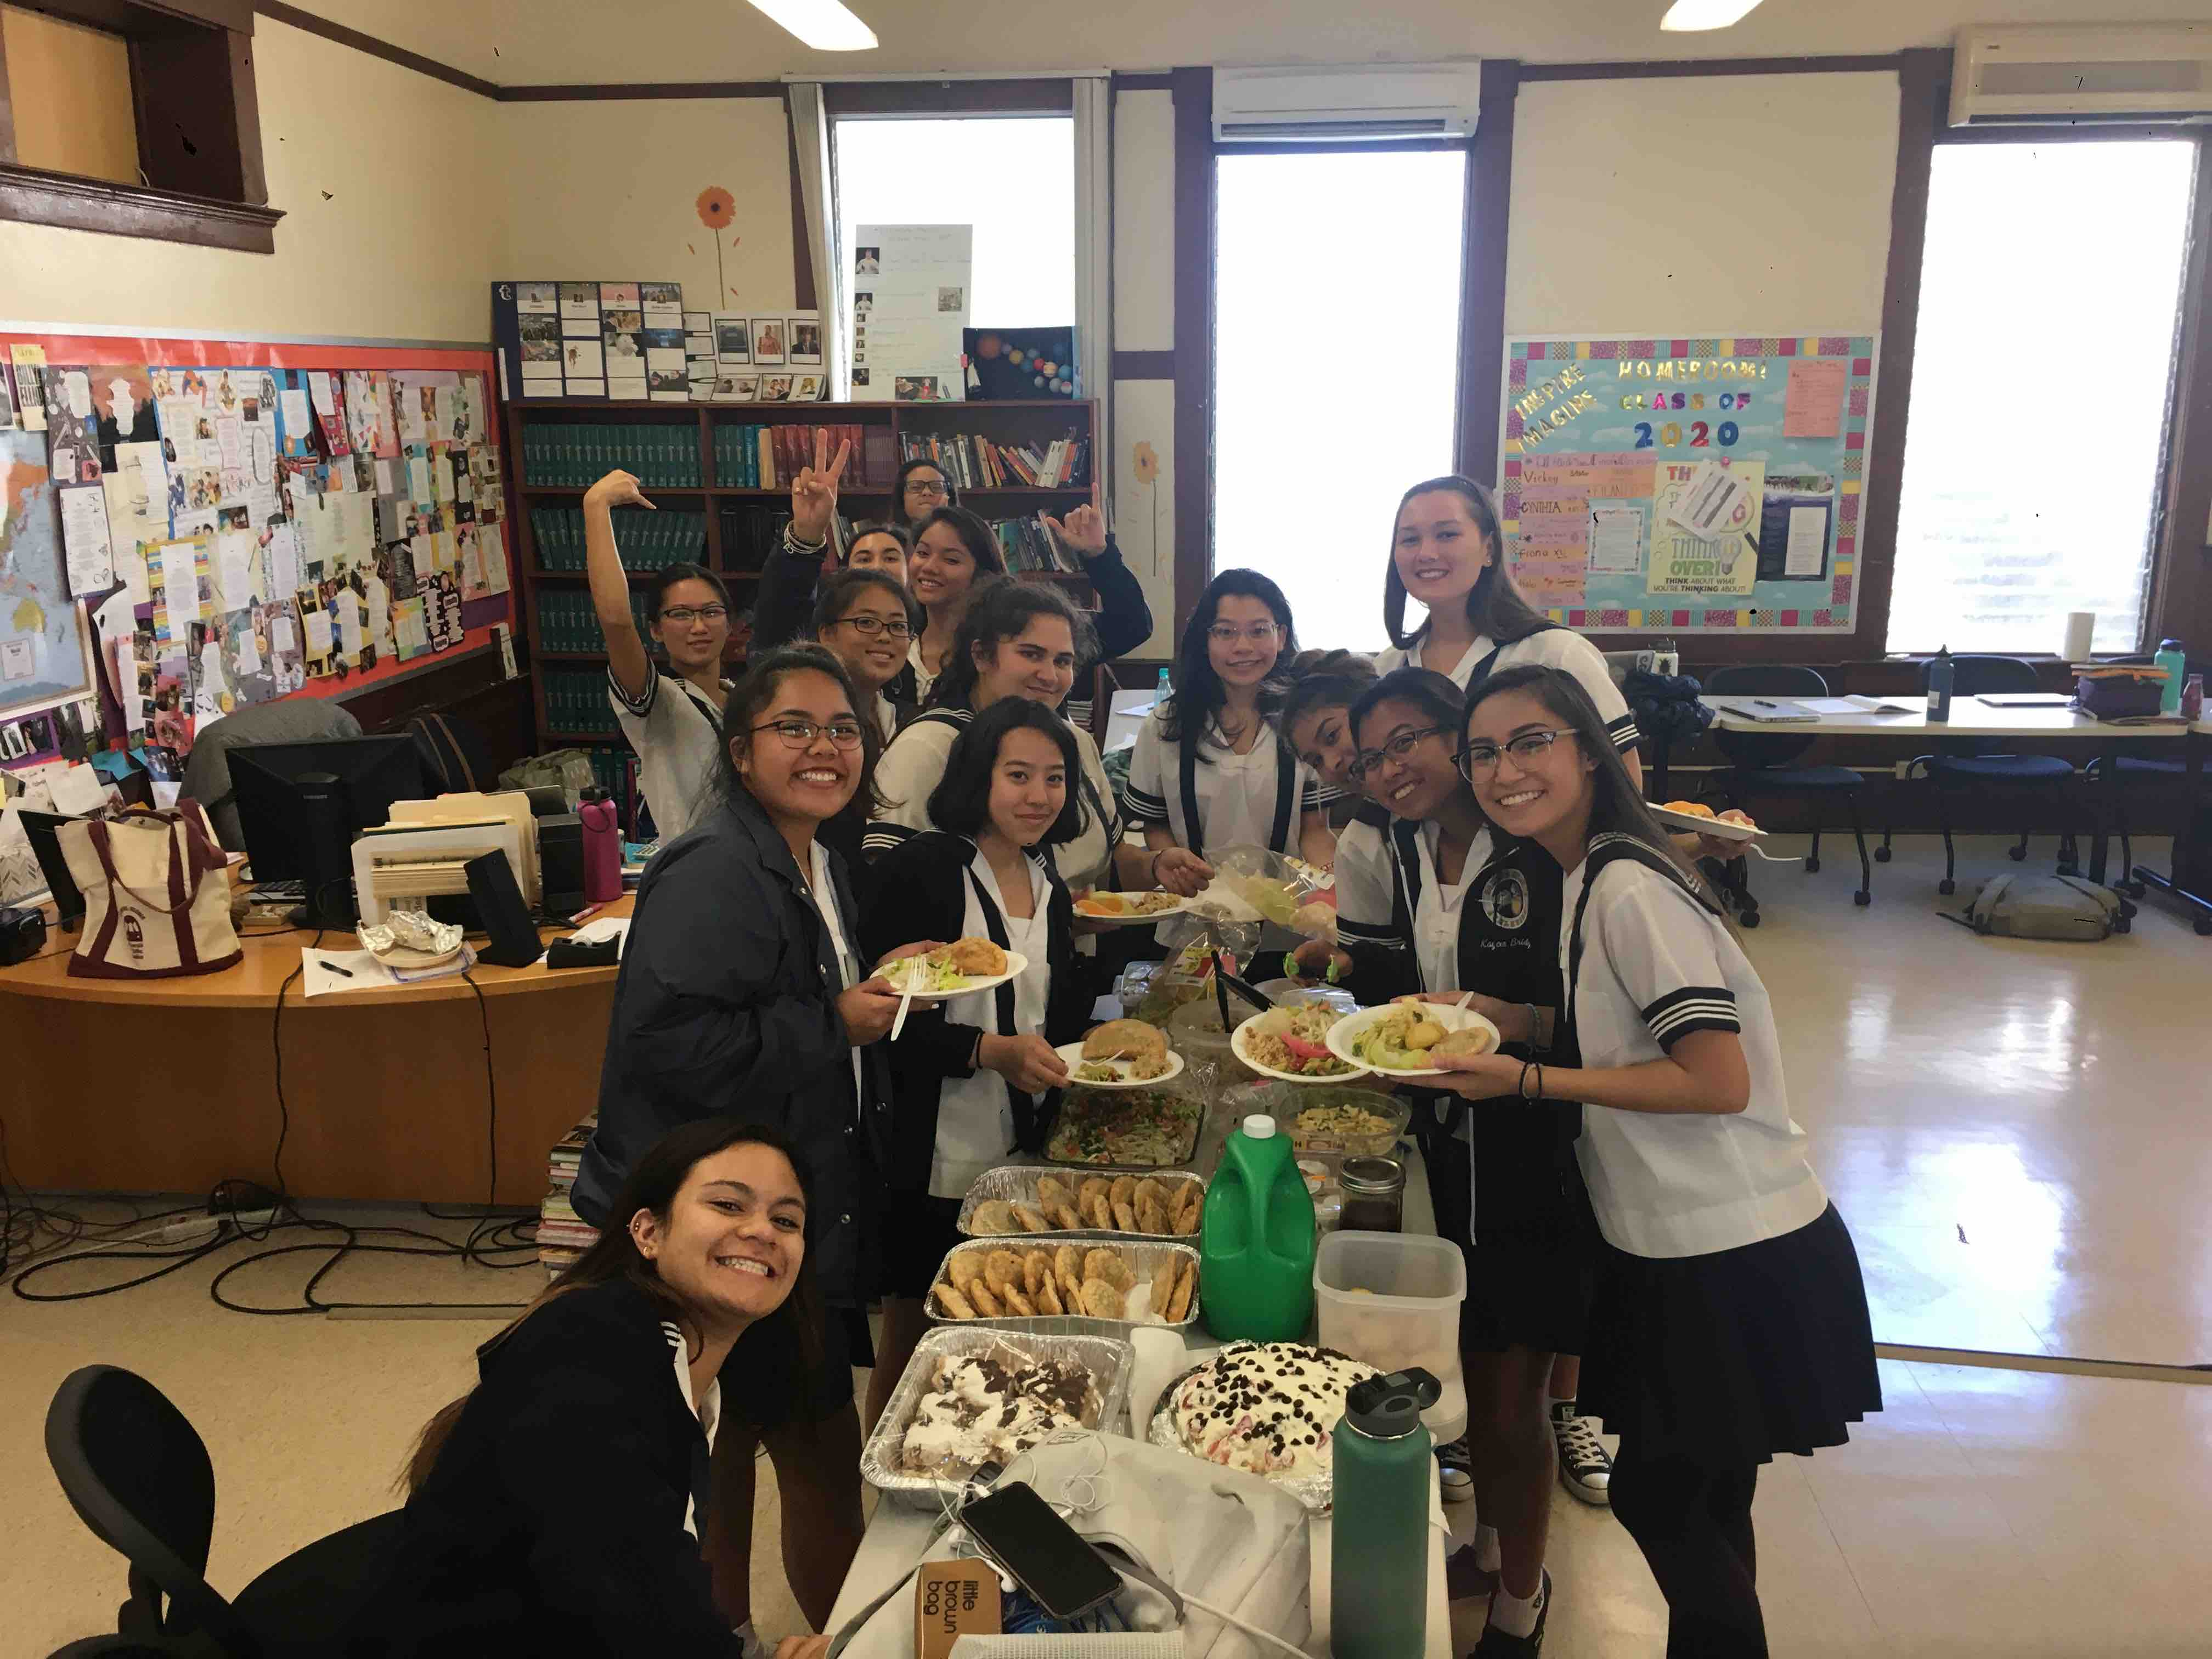 Literature of Food students enjoy a potluck, as a way for food to bring a sense of unity within each other.